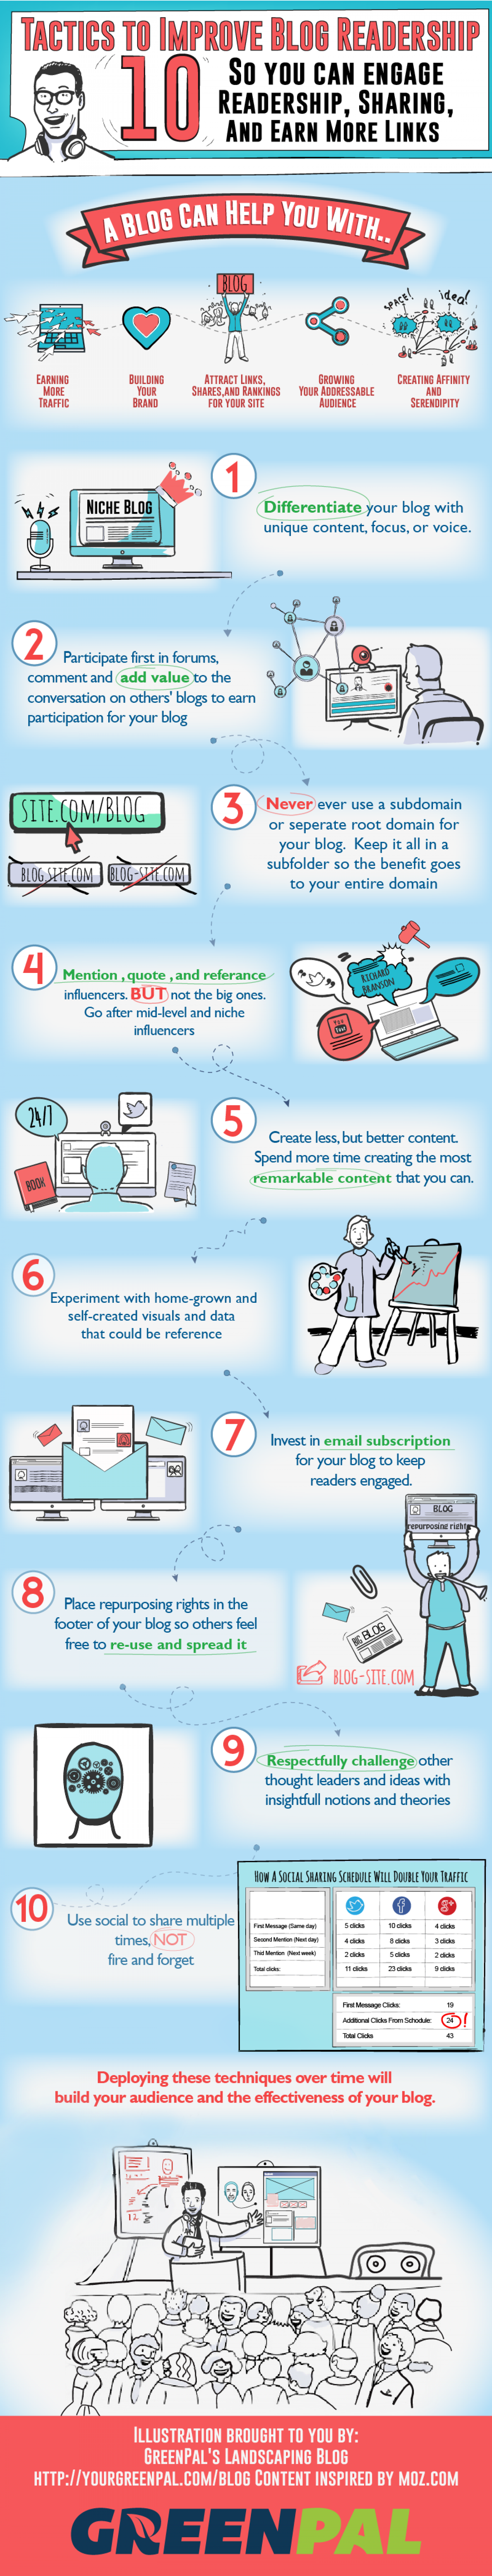 10 Tactics to Improve Blog Readership Infographic